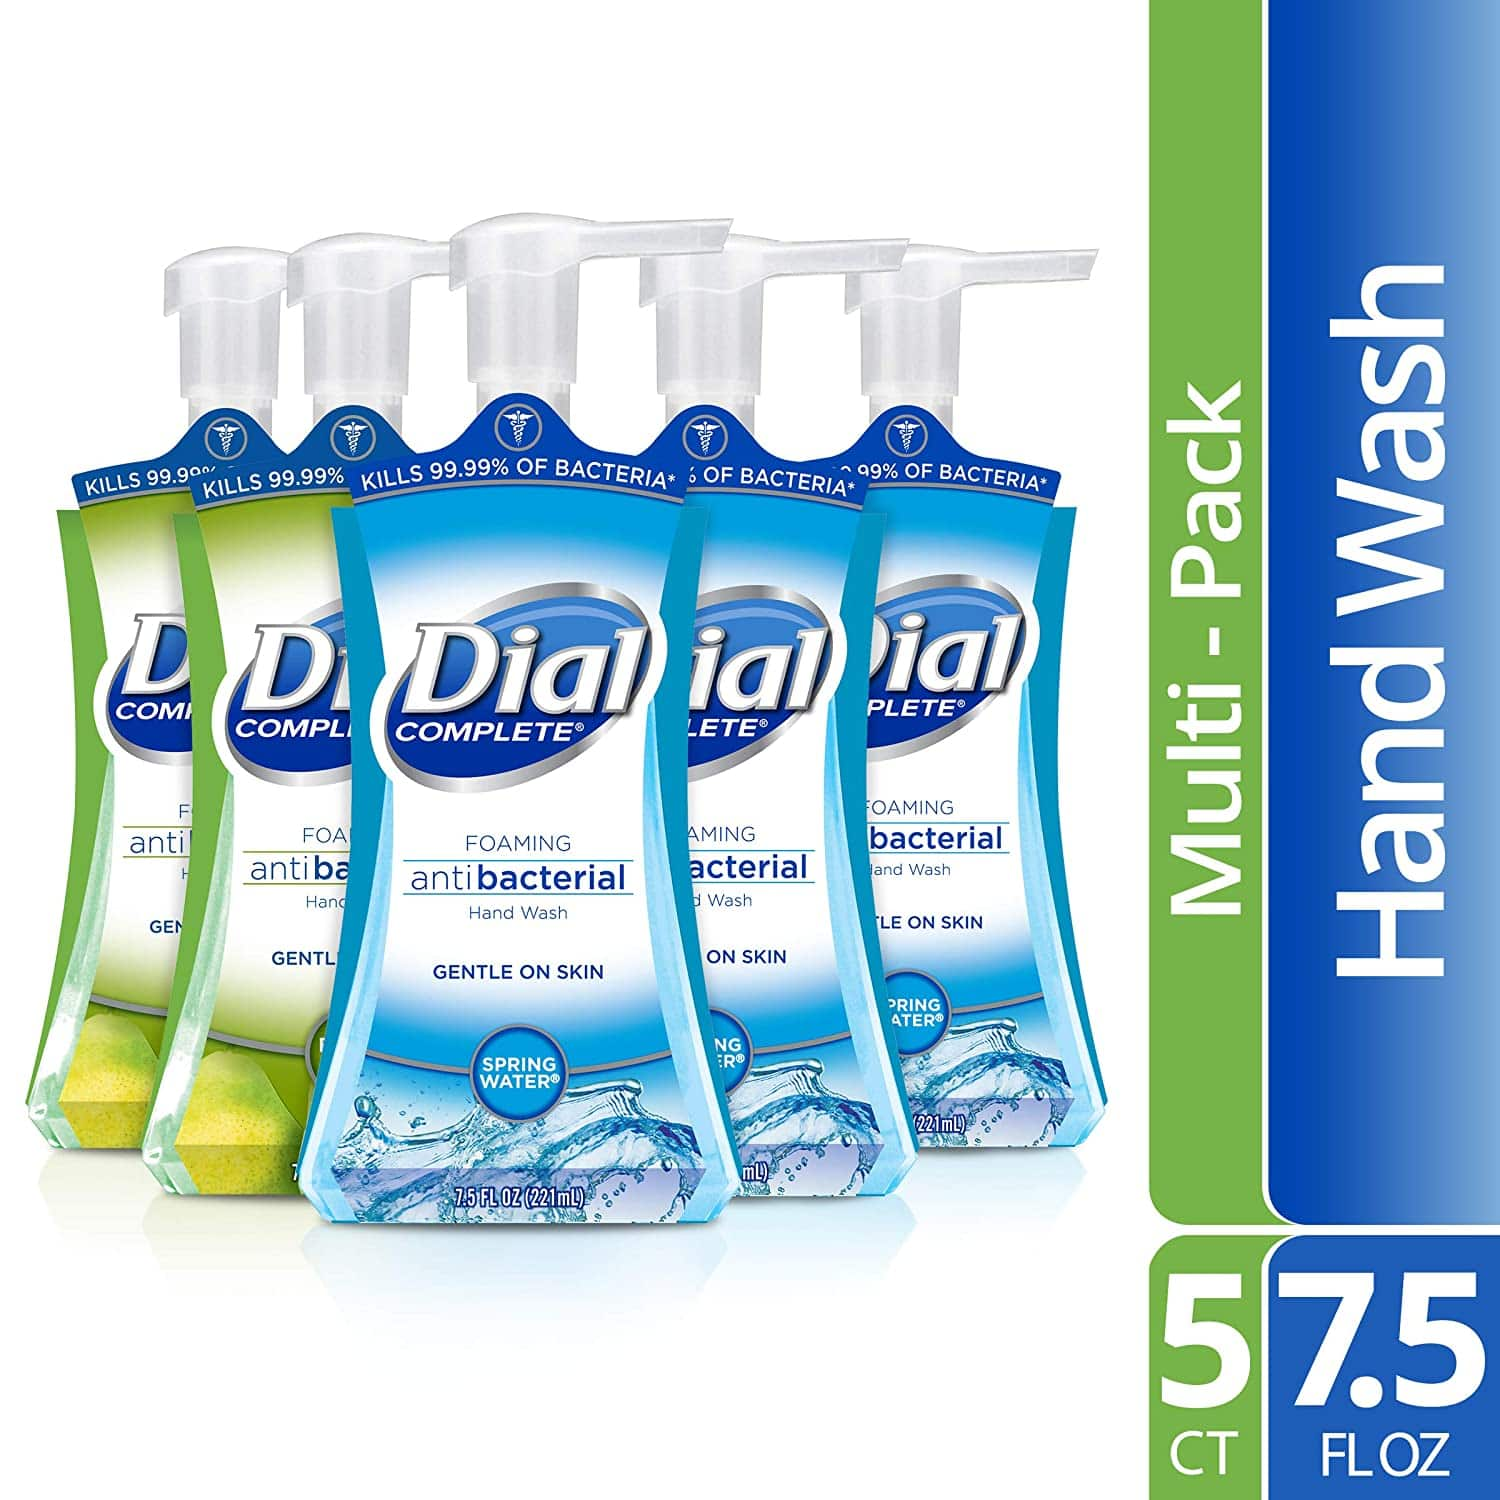 Dial Complete Antibacterial Foaming Hand Soap, 2-Scent Variety Pack, Spring Water/Fresh Pear, 7.5 Fluid Ounces Each (Pack of 5) for $12.49